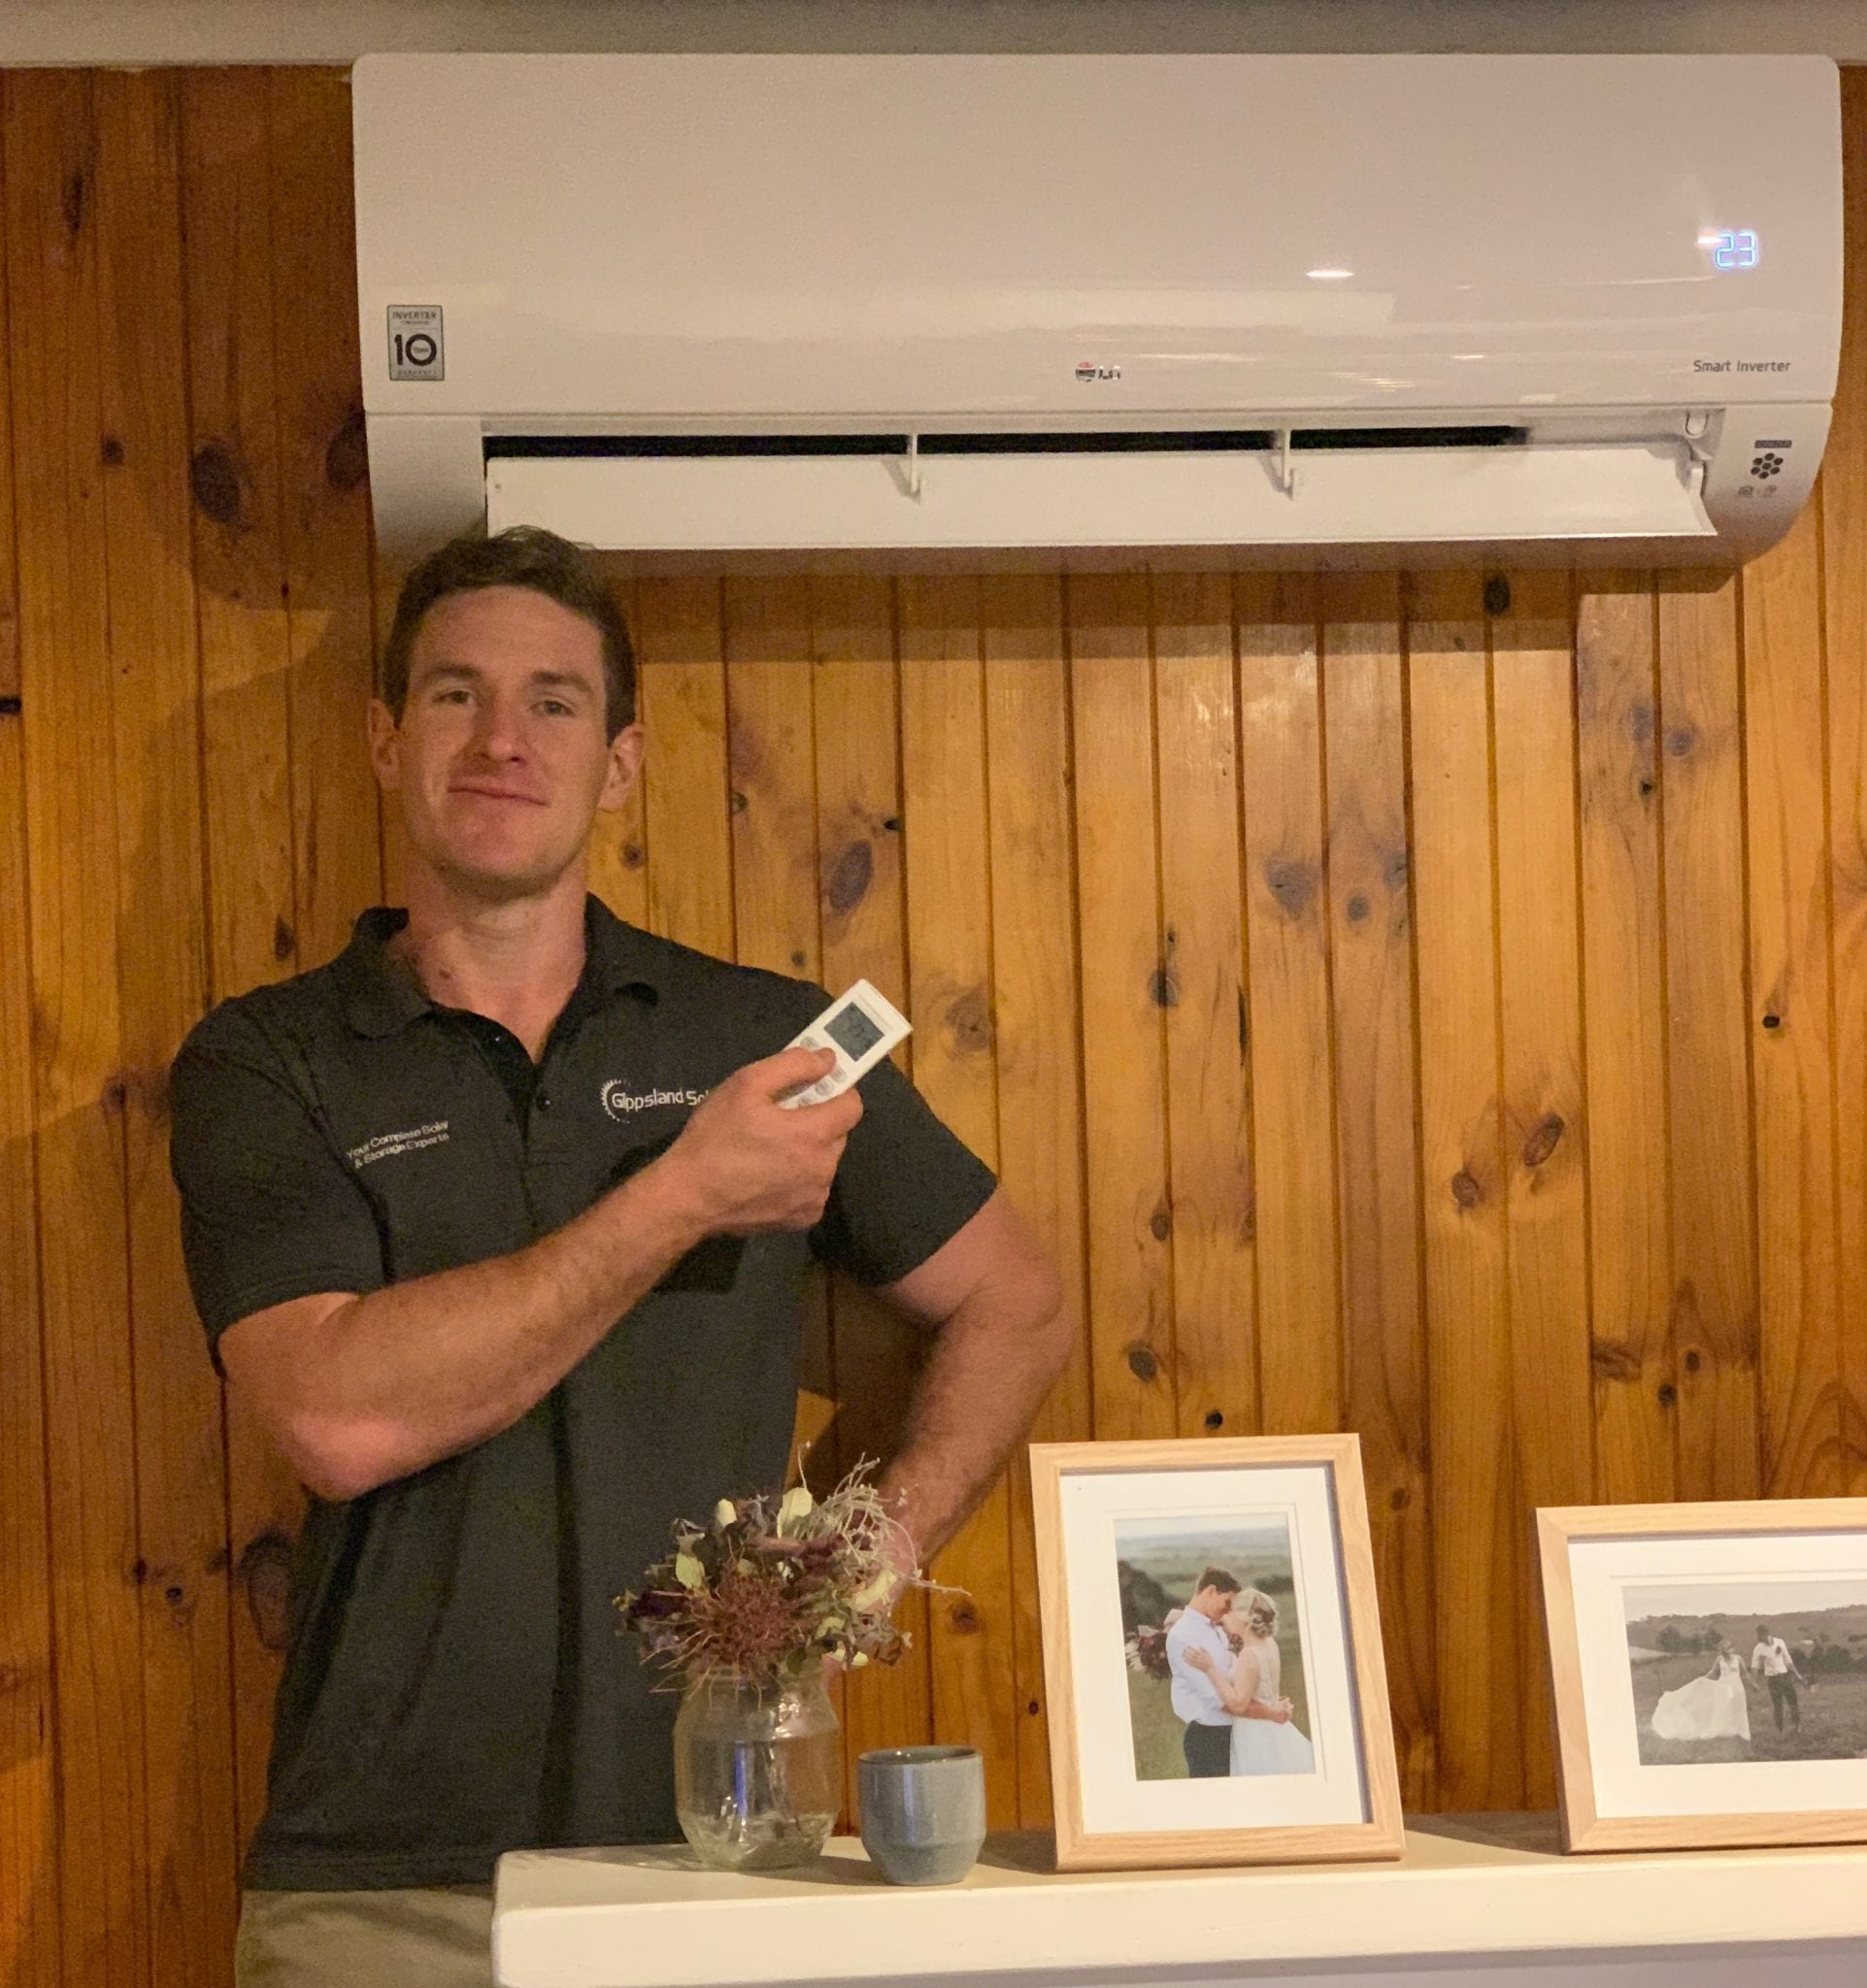 Gippsland Solar's Mitch Richardson with LG WH24 7.1kW reverse cycle split system